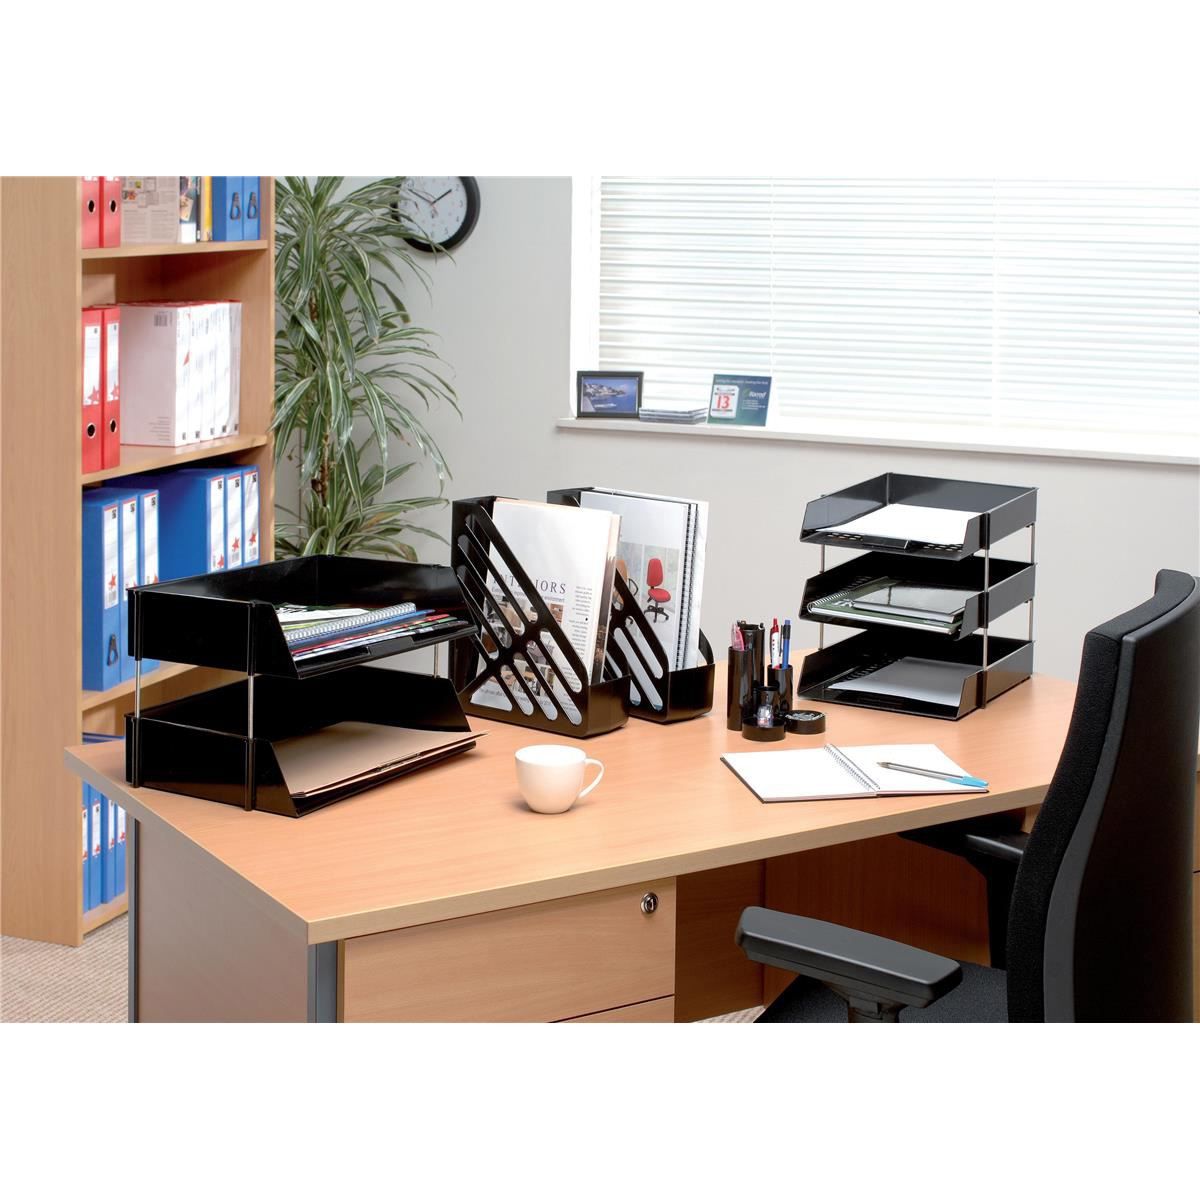 5 Star Office Desk Tidy with Variable Sized 6 Compartment Tubes Black